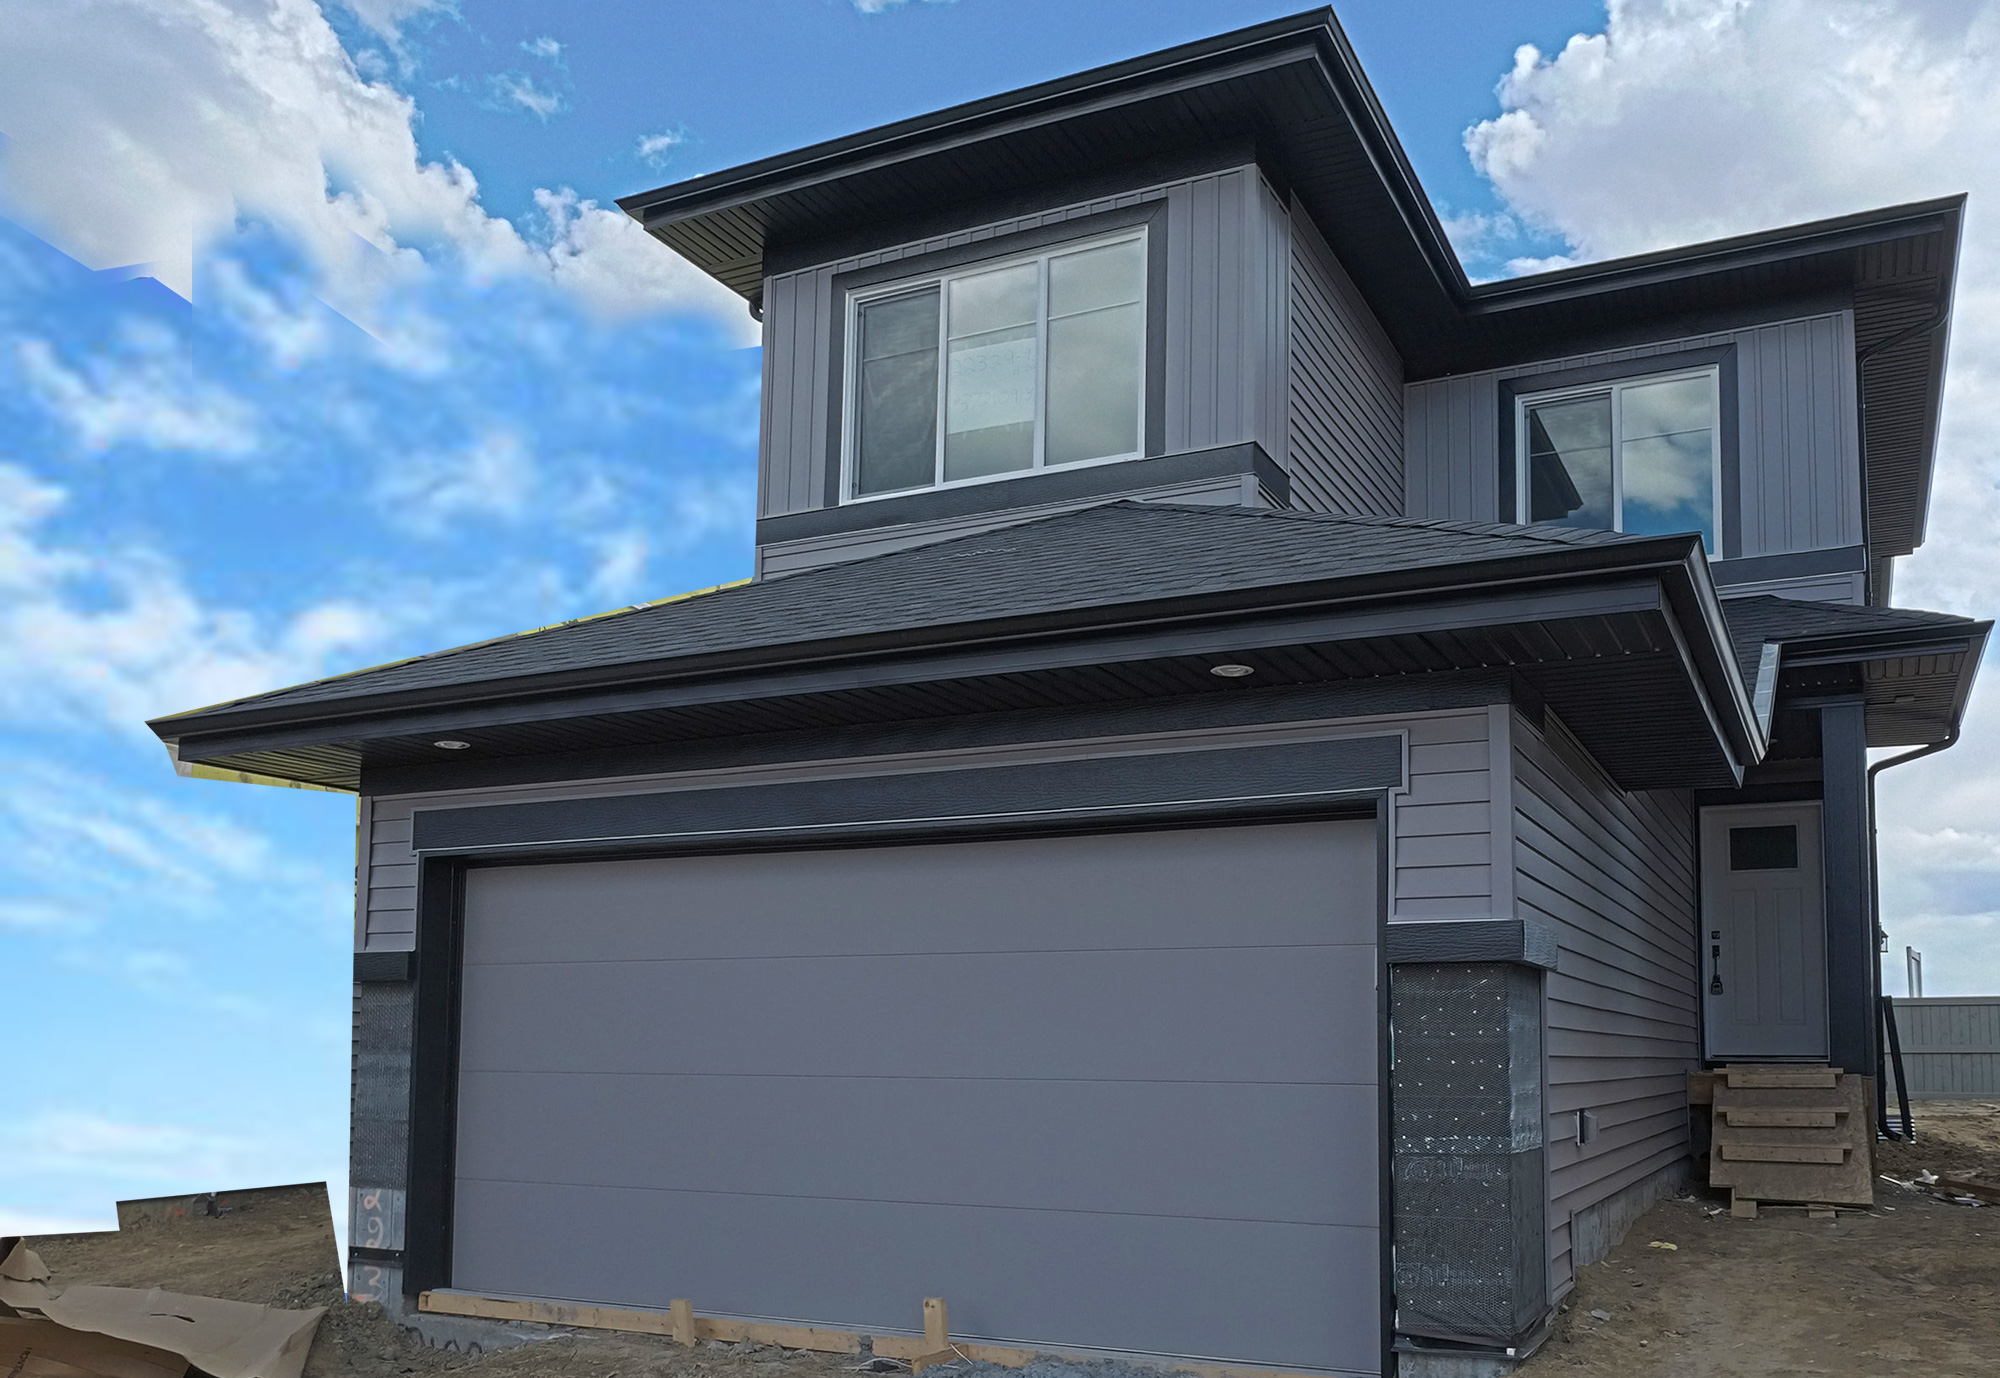 2 story 1622 sqft attached garage (Secord) and legal basement